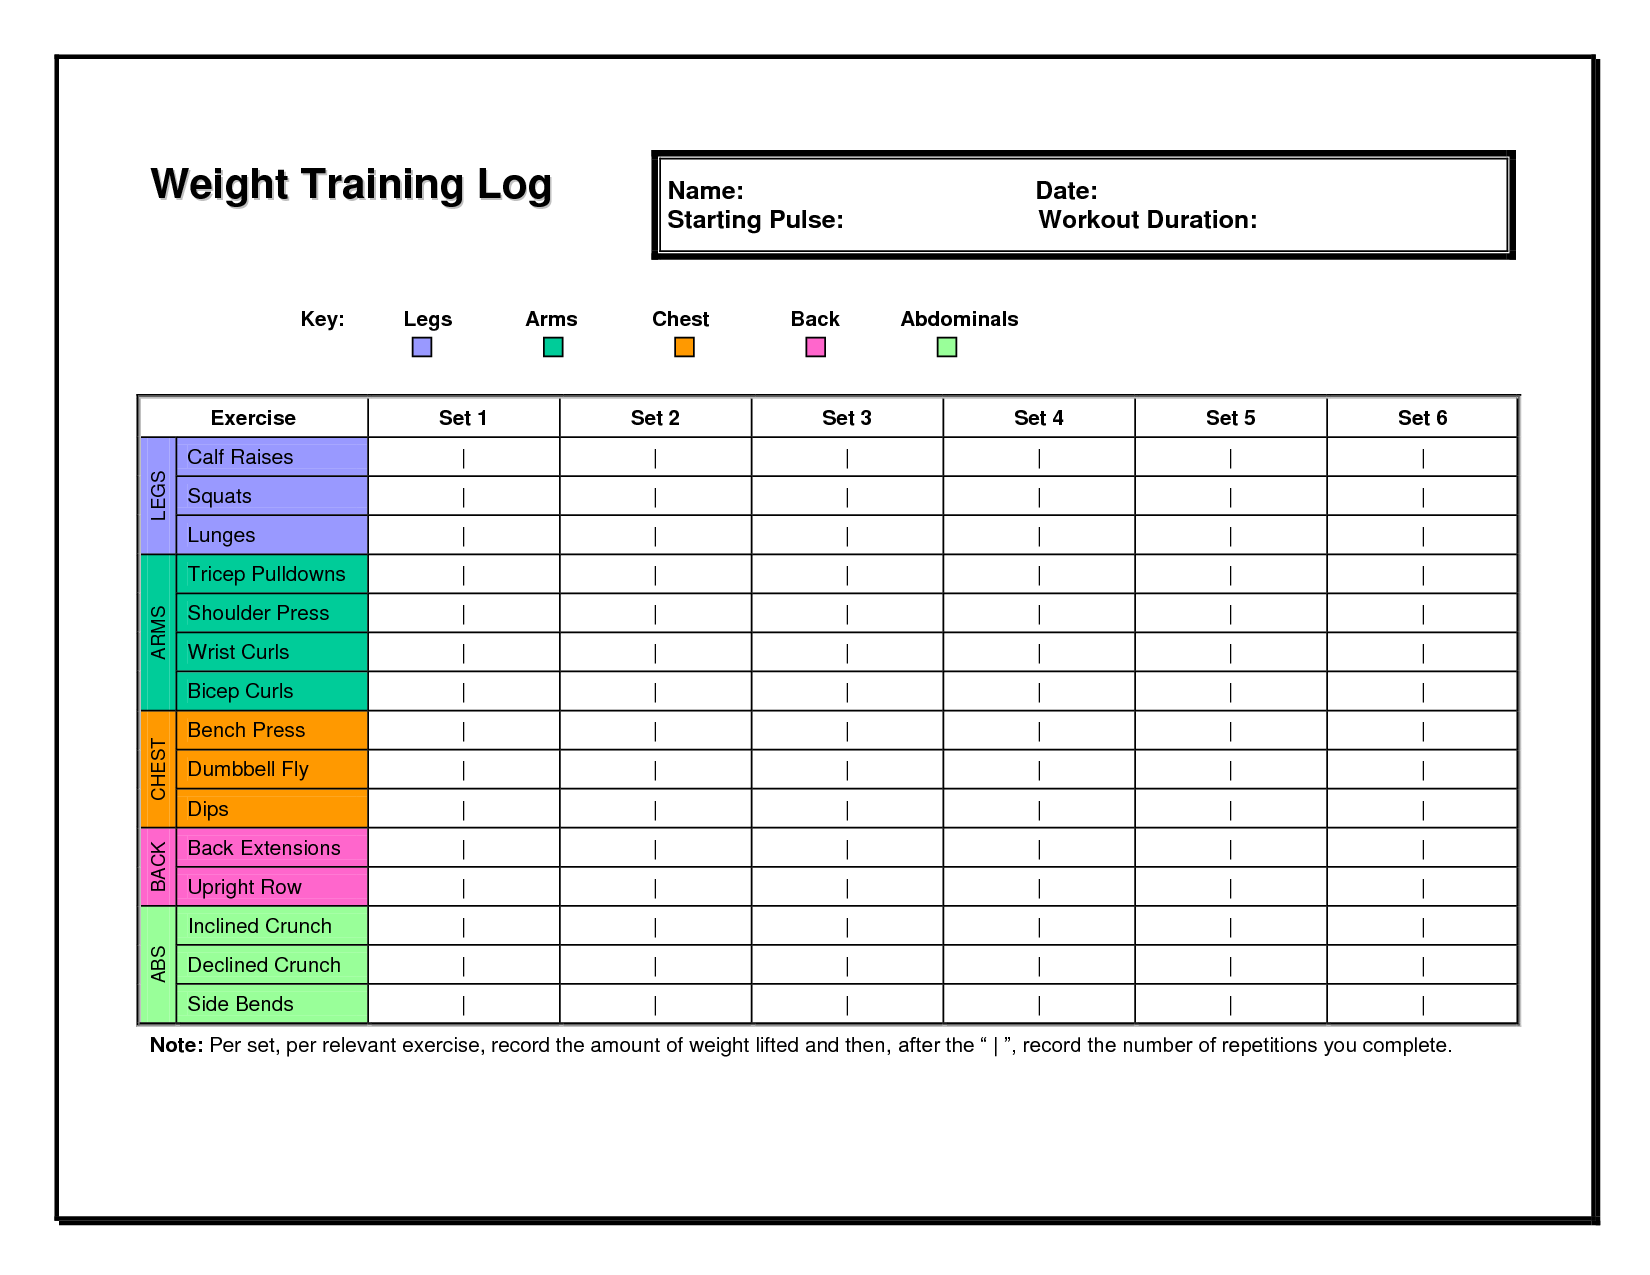 Weight training schedule template targergolden dragon weight training schedule template nvjuhfo Image collections